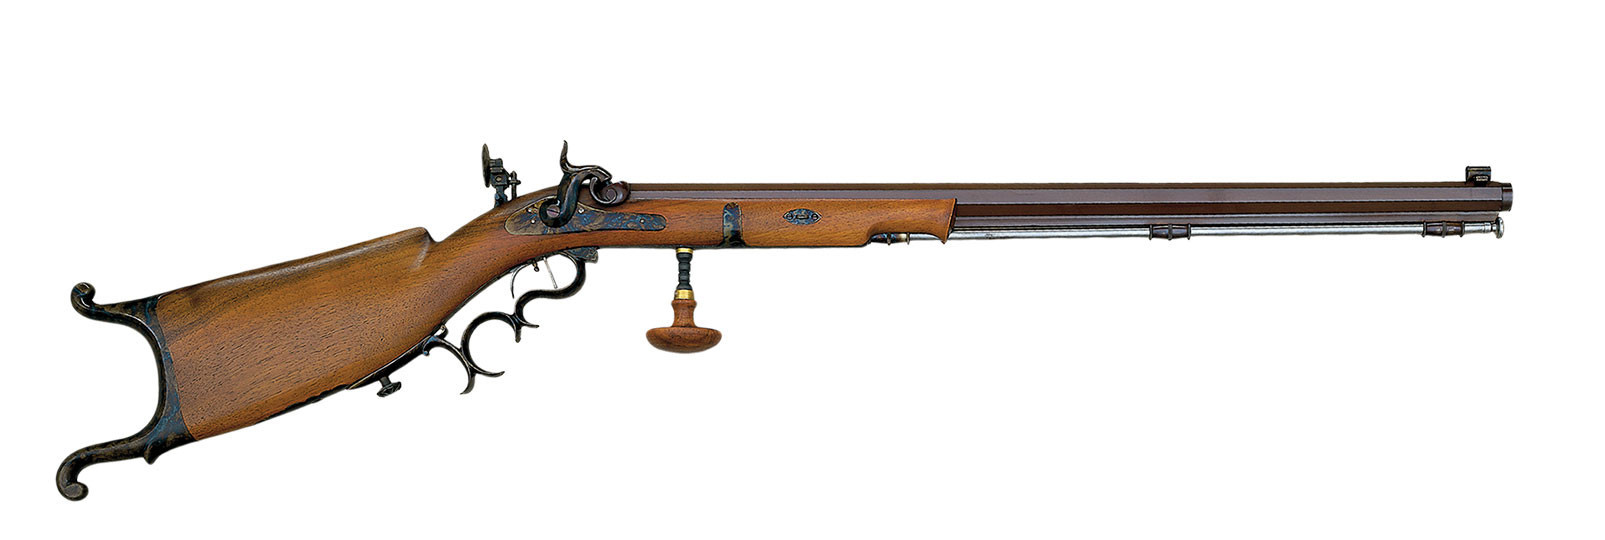 Bristlen morges rifle  44 c.